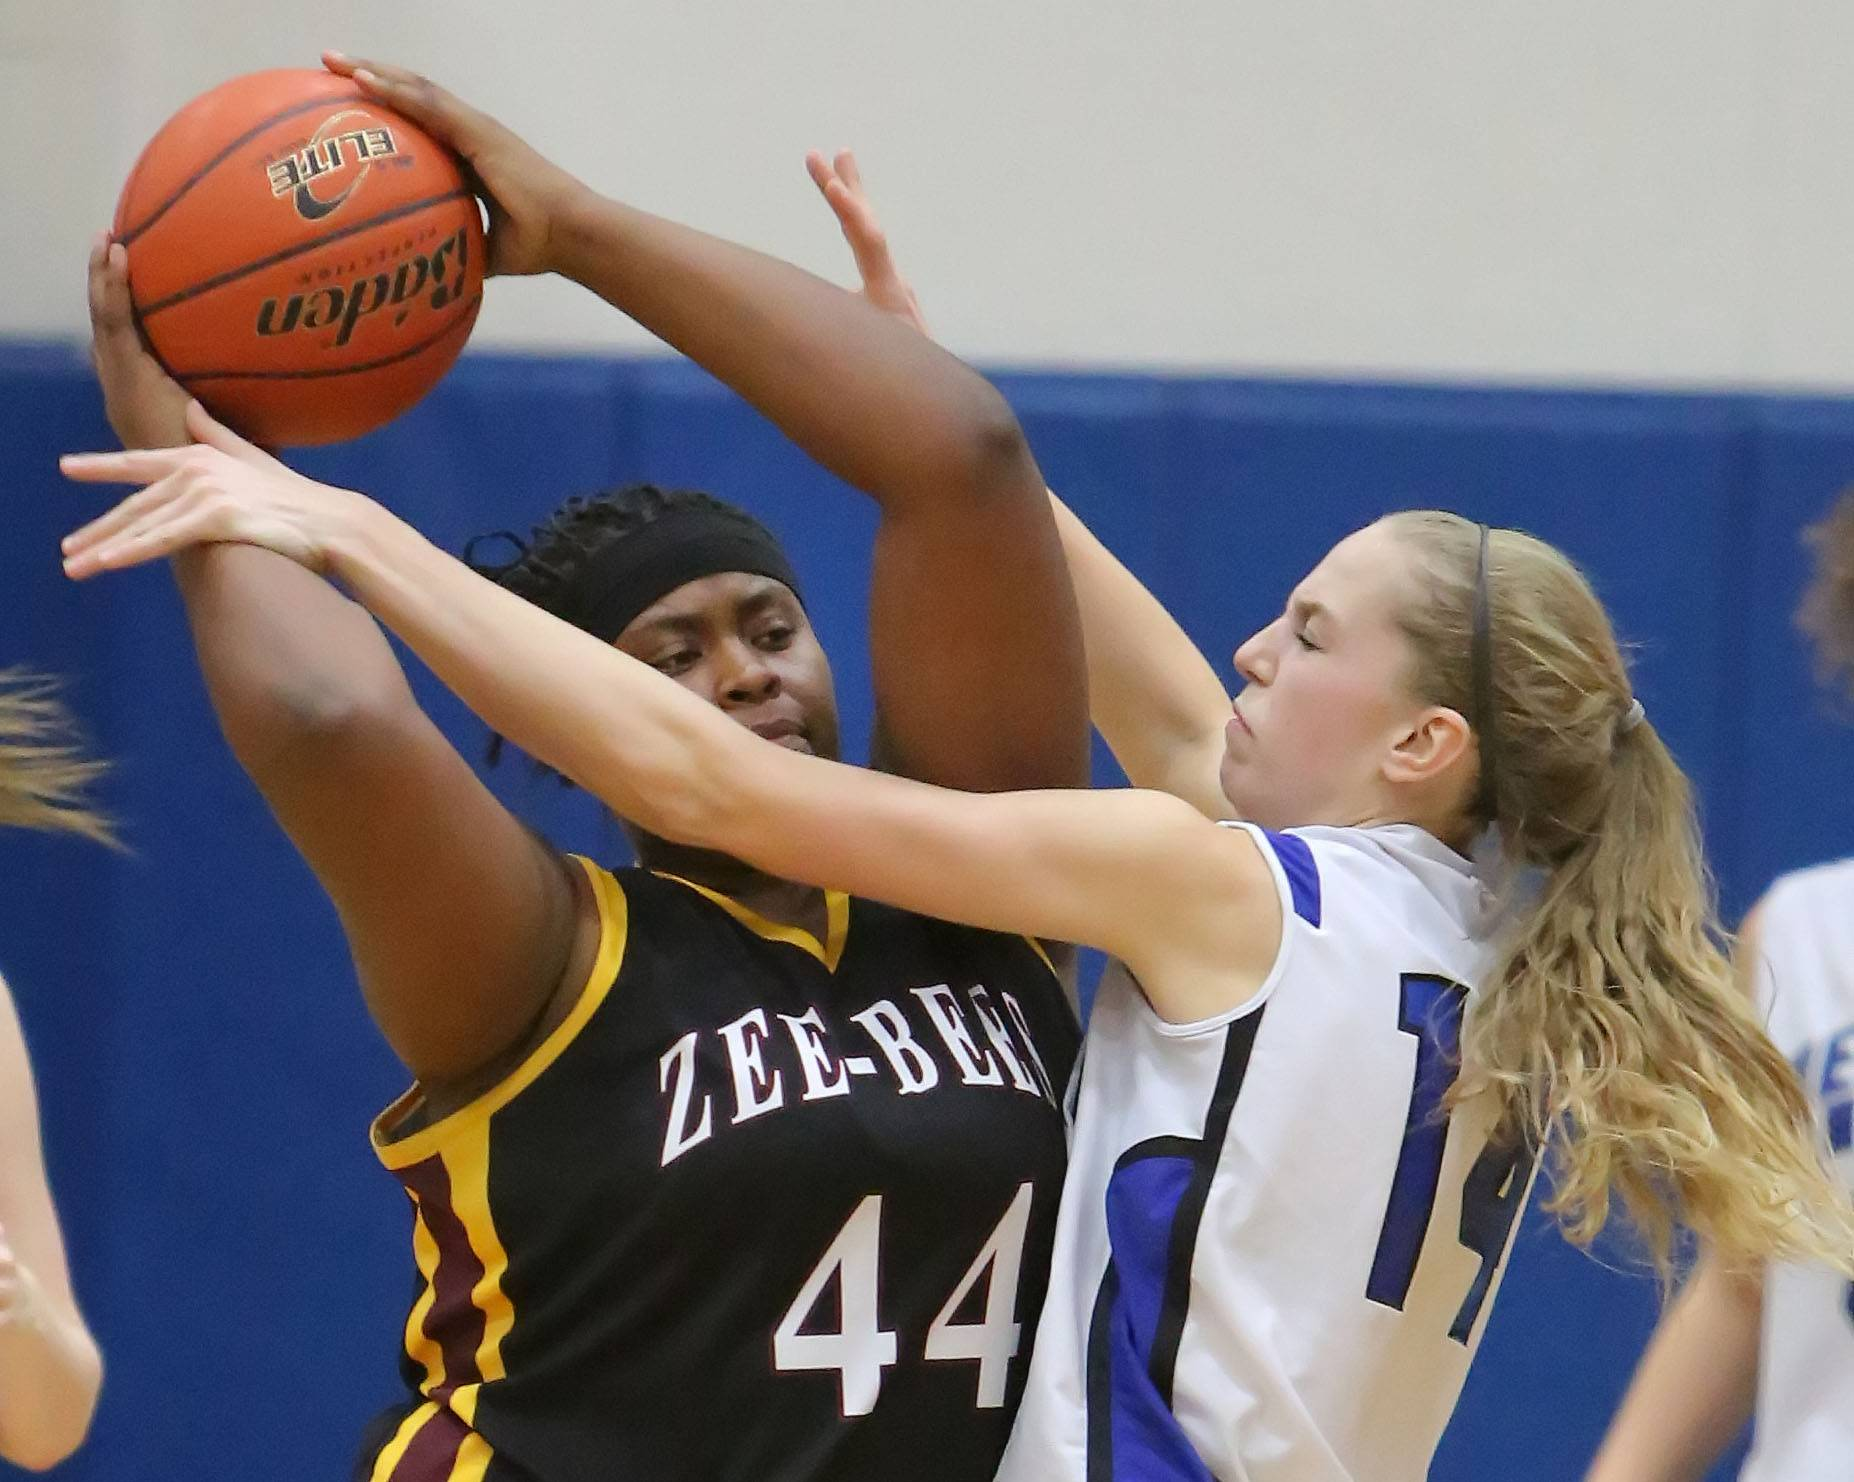 Vernon Hills' Kasey Firnbach, right defends against Zion-Benton's Mia Yarbrough during the North Suburban Conference championship game Wednesday night in Vernon Hills.